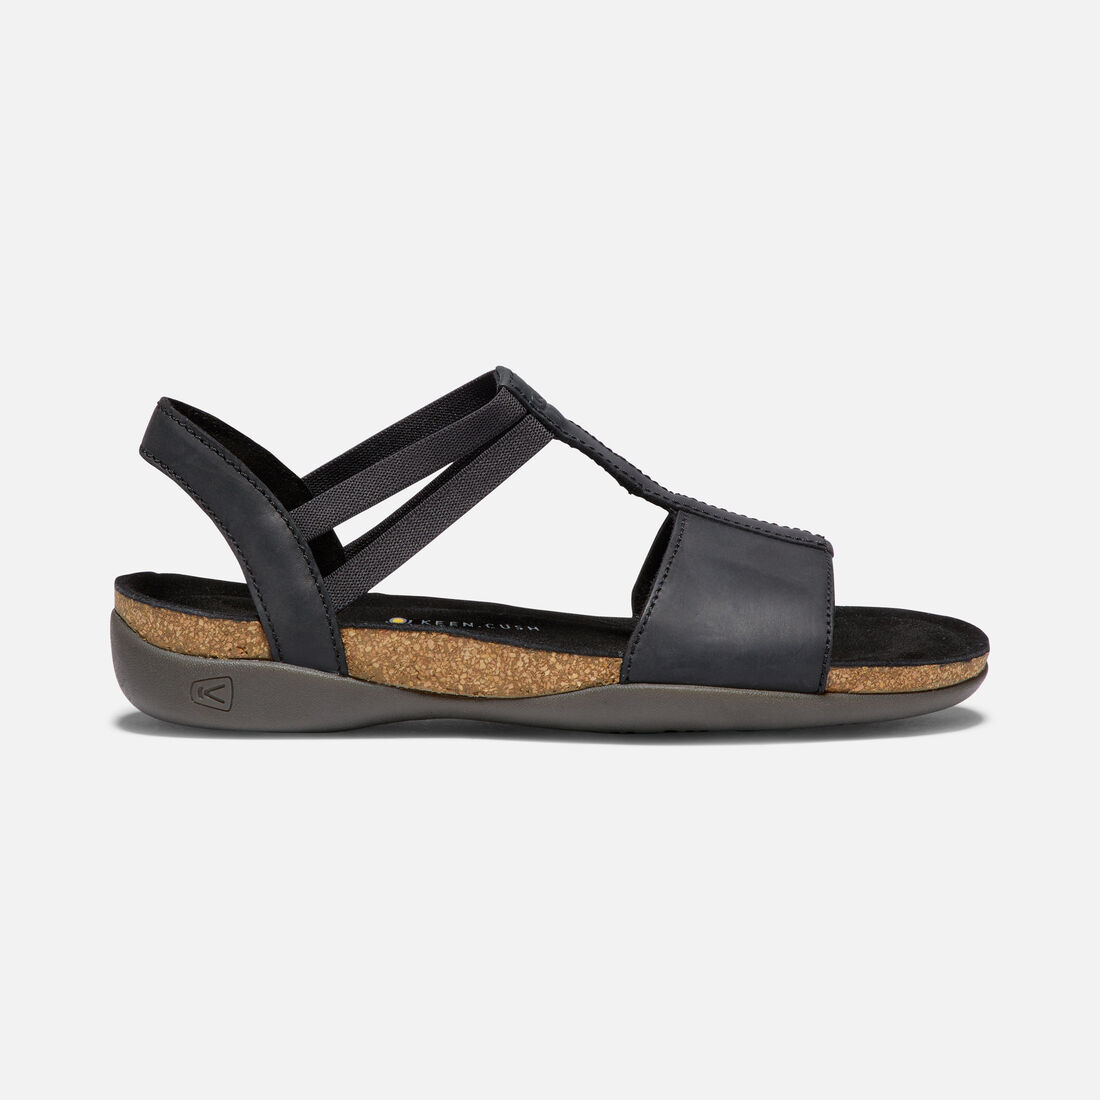 91548fdc2f1 Women s ANA CORTEZ T-STRAP in BLACK BLACK - large view.